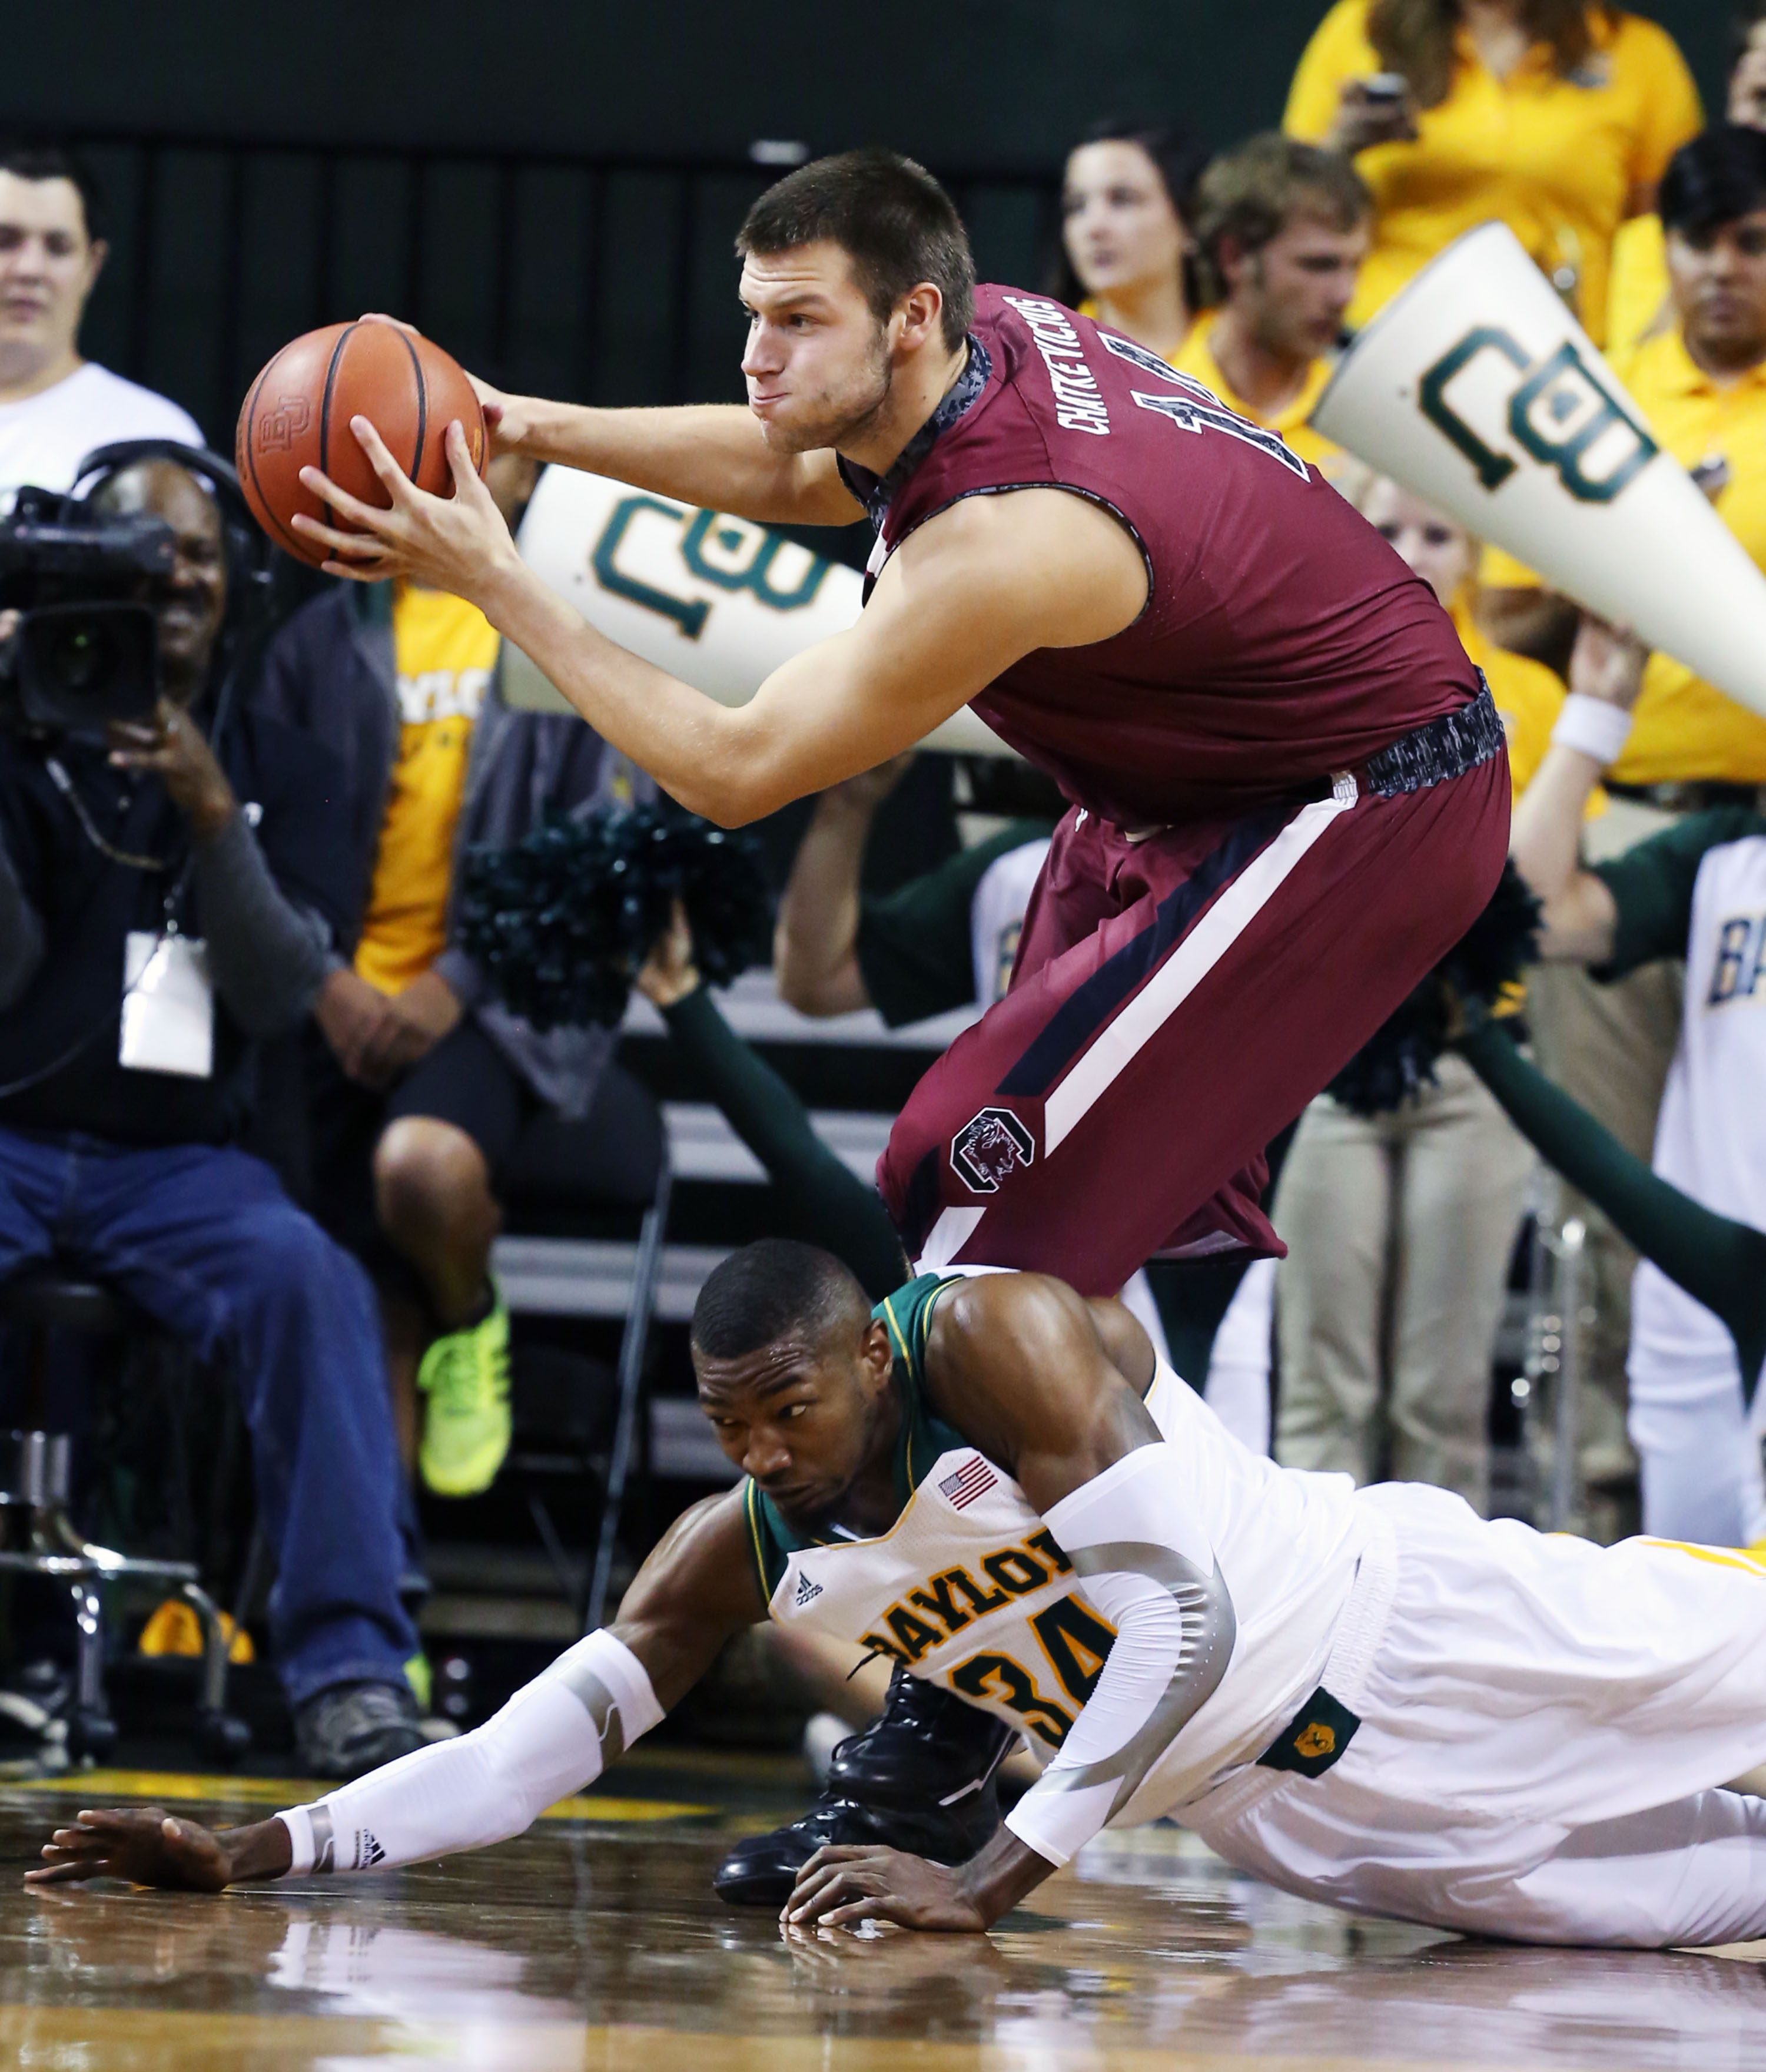 South Carolina Laimonas Chatkevicius (14) pulls down a rebound over Baylor's Cory Jefferson (34) in the first half of an NCAA college basketball game, Tuesday, Nov. 12, 2013, in Waco, Texas